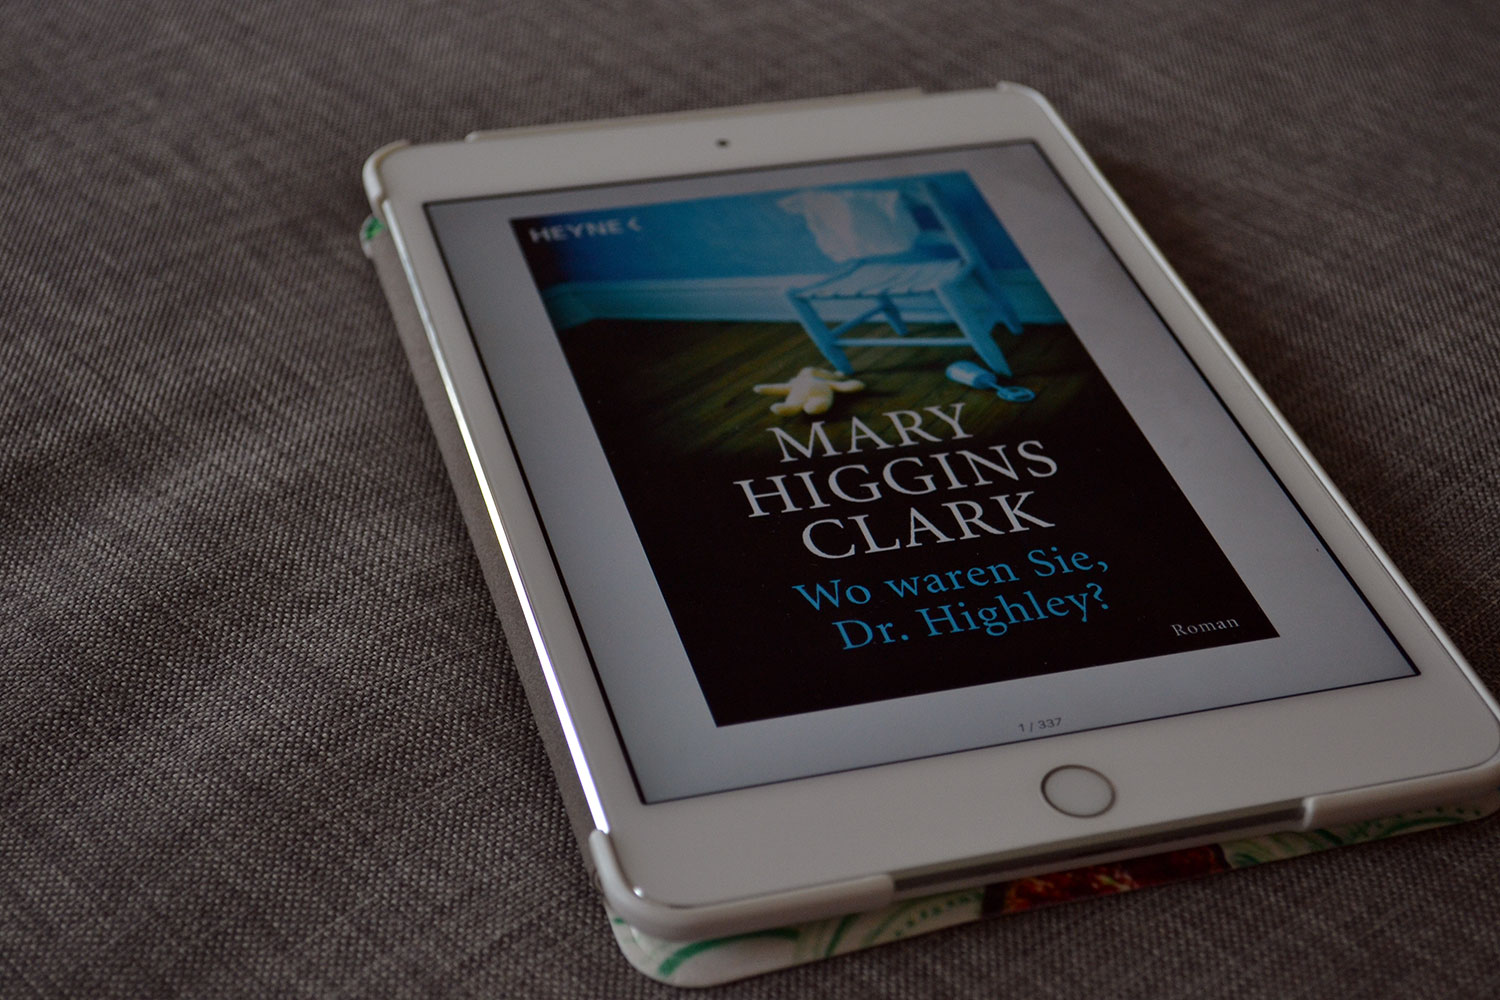 Books: Wo waren Sie, Dr. Highley | Mary Higgins Clark - DSC 0675